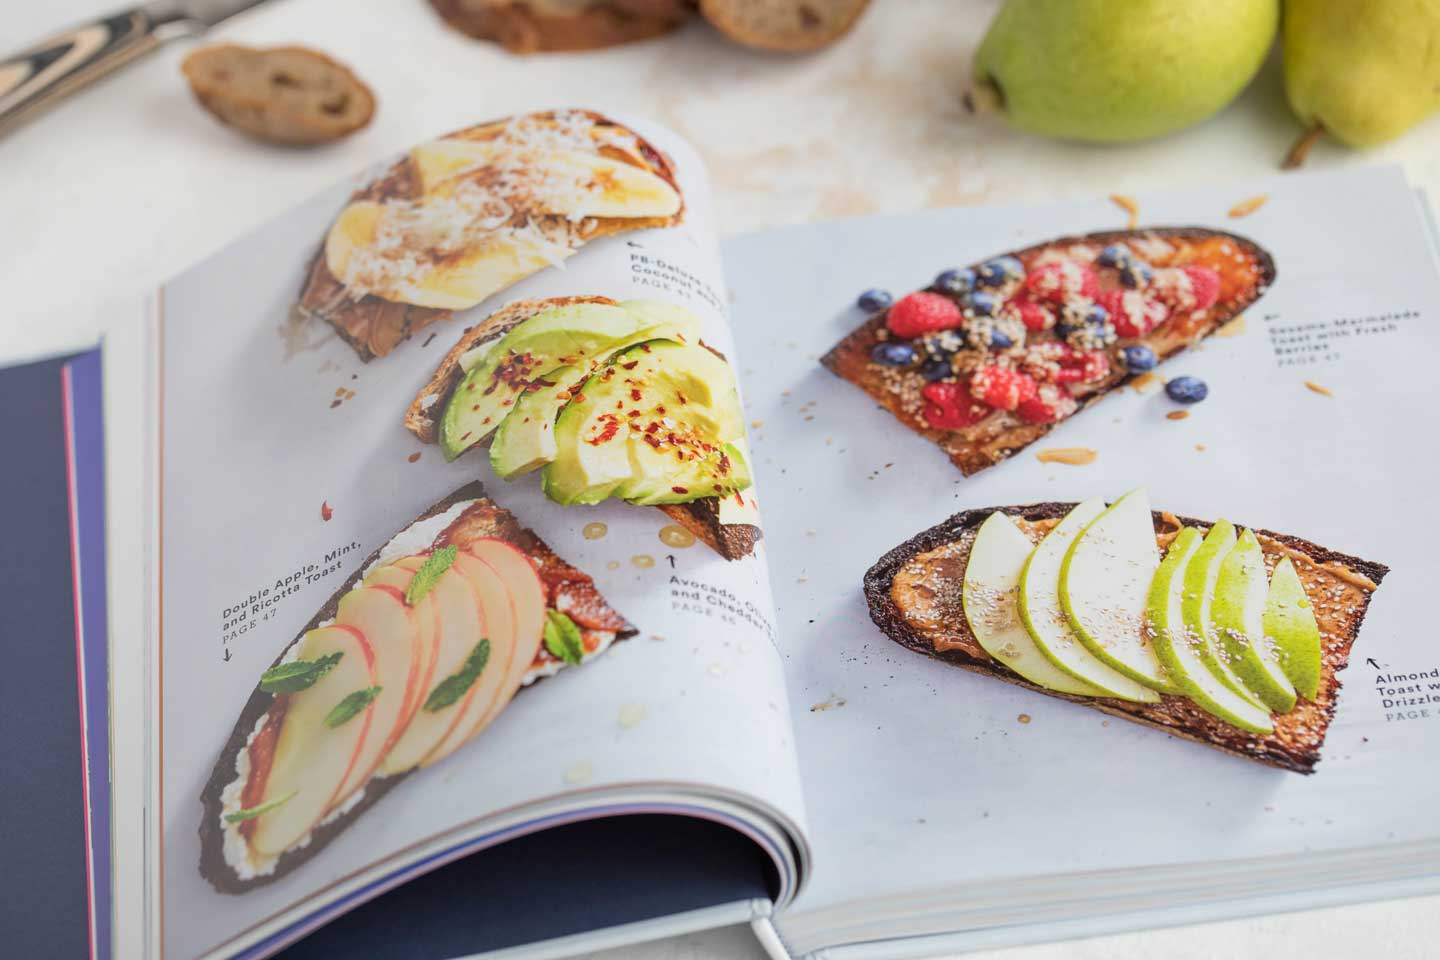 Besides the taco recipe I'm sharing today, Healthyish is just filled with quick and easy recipes - from breakfast to dessert, and everything in between!